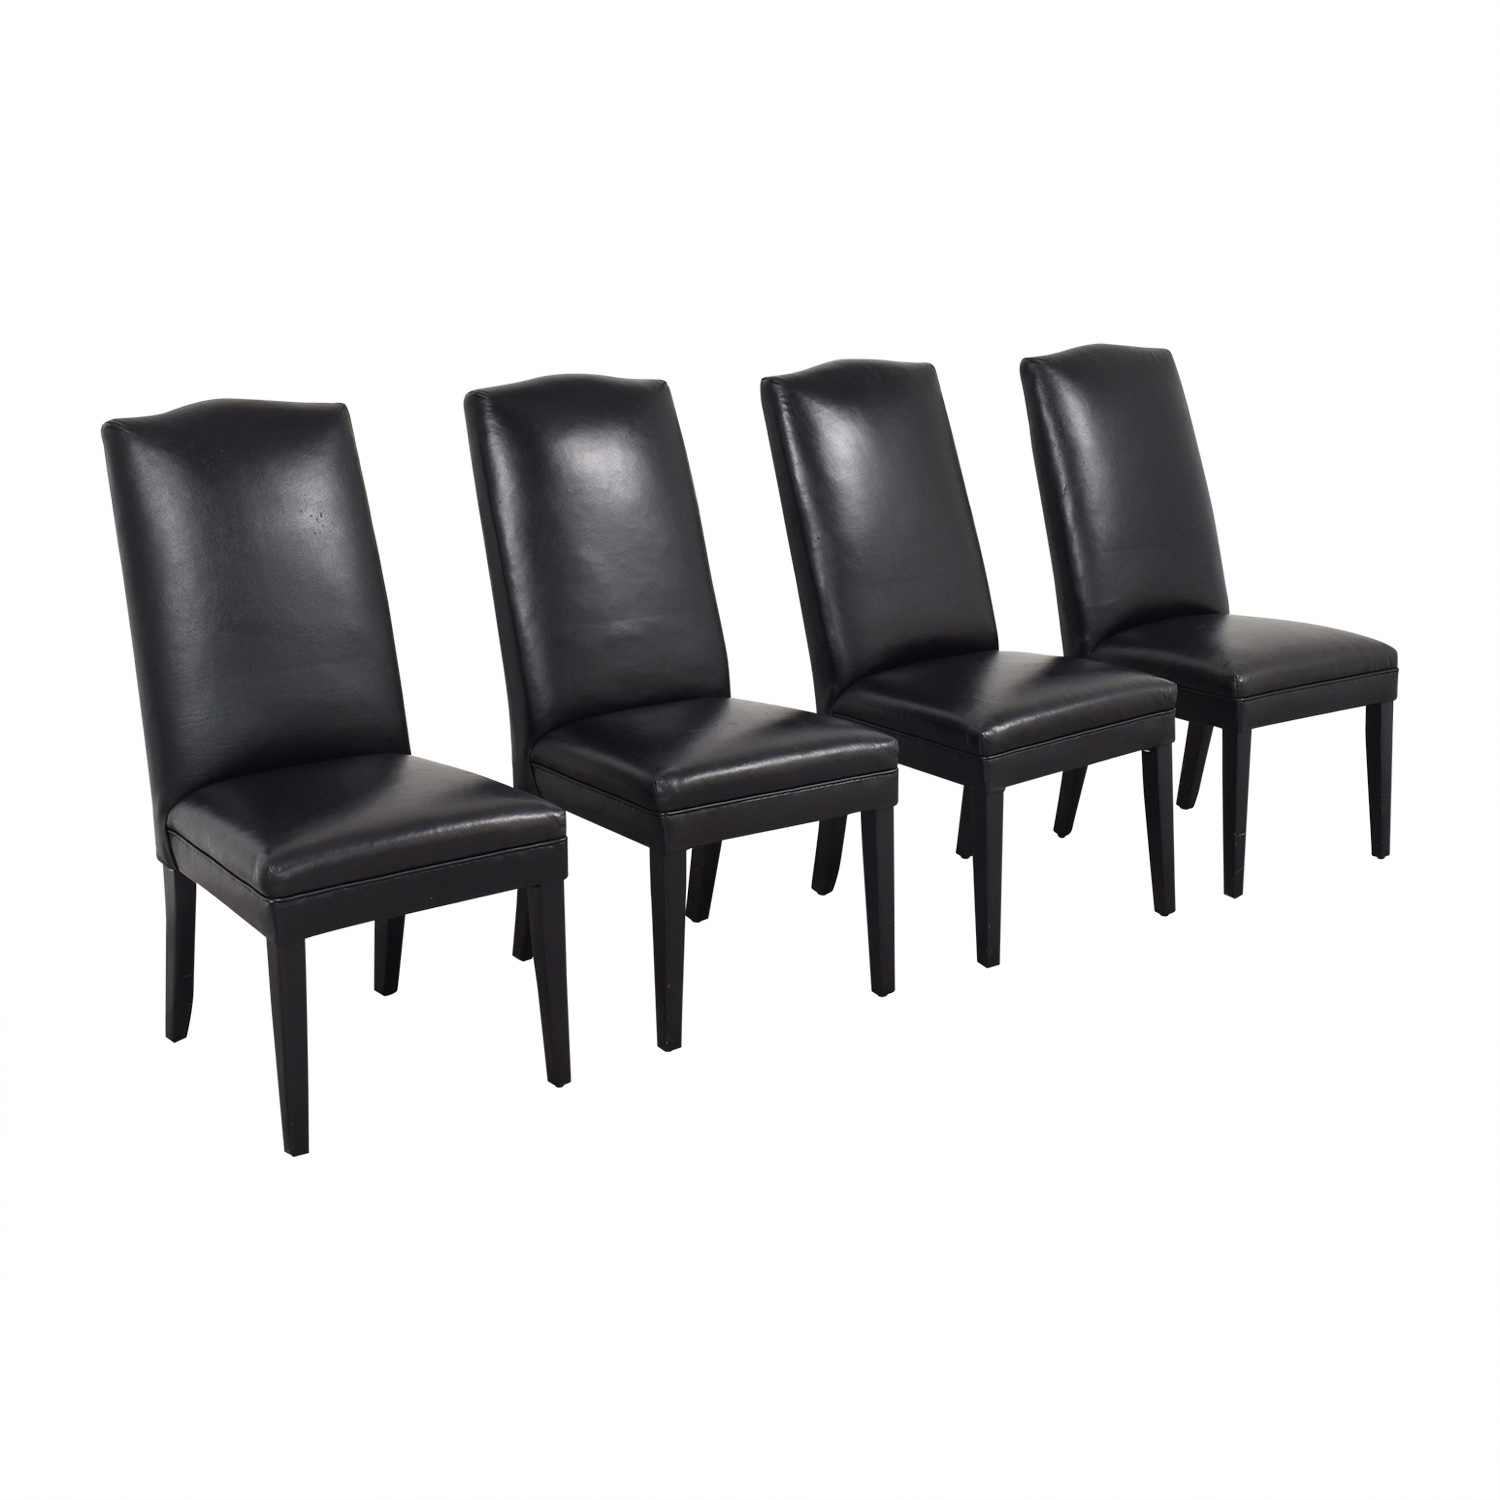 Classic Style High Back Dining Chairs coupon